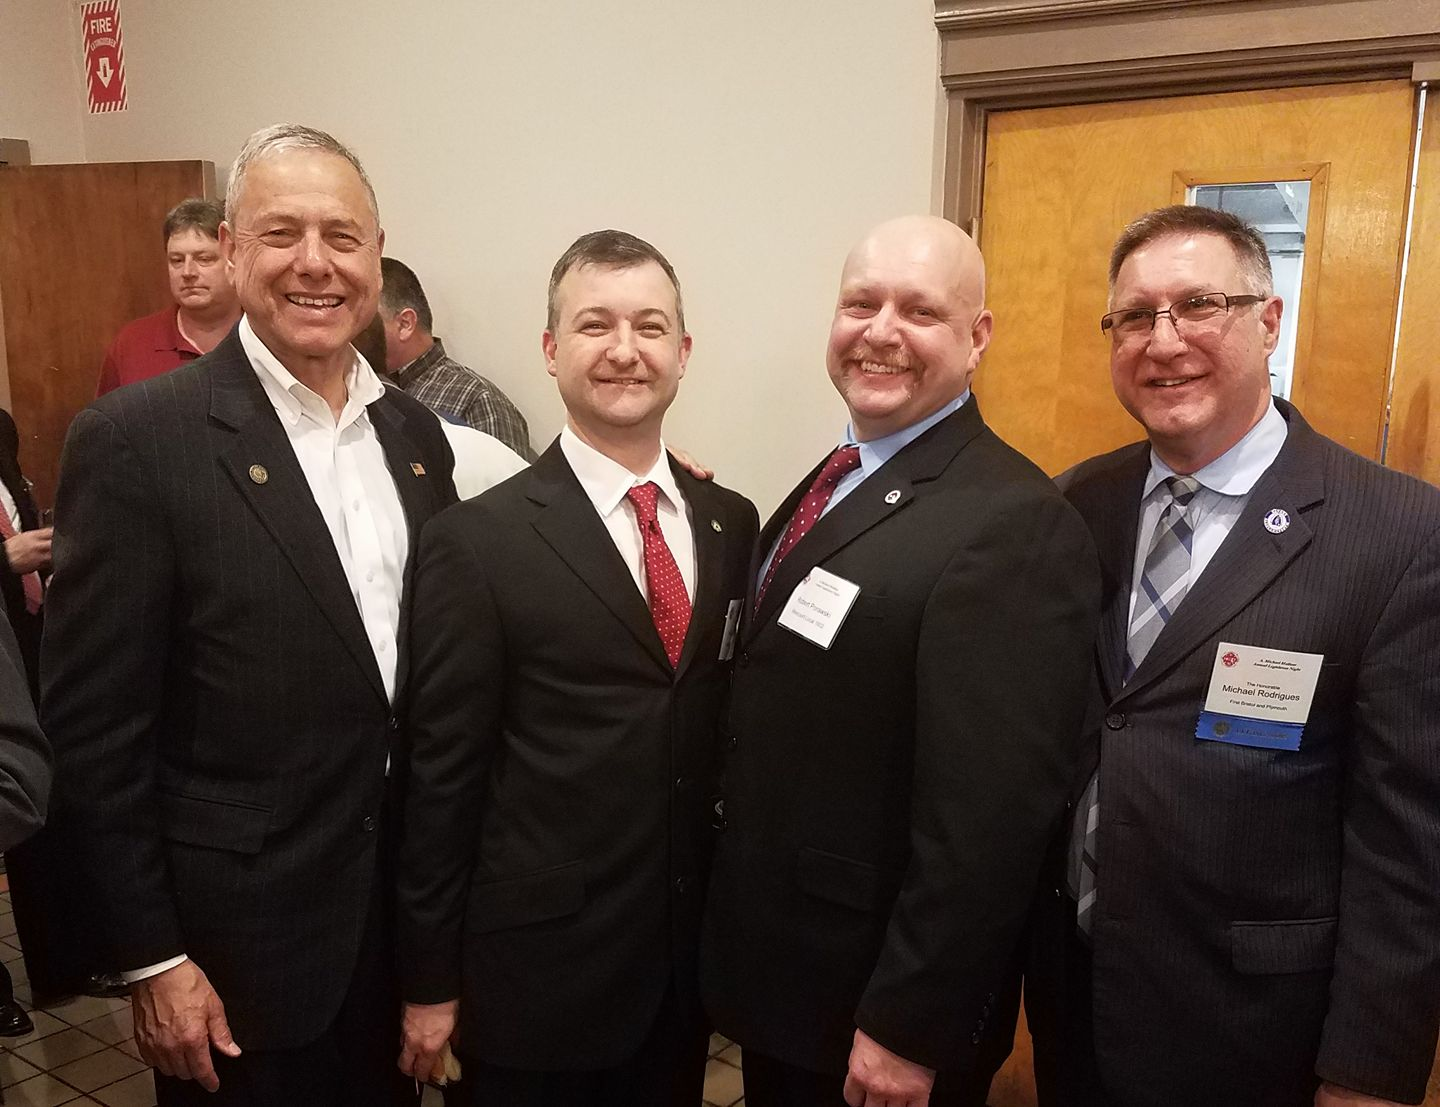 The Professional Fire Fighters gathering is one of the nicest of the year. State Senator Michael Rodrigues and I shared great conversation with Westport's Keith Nickelson and Bob Powarski